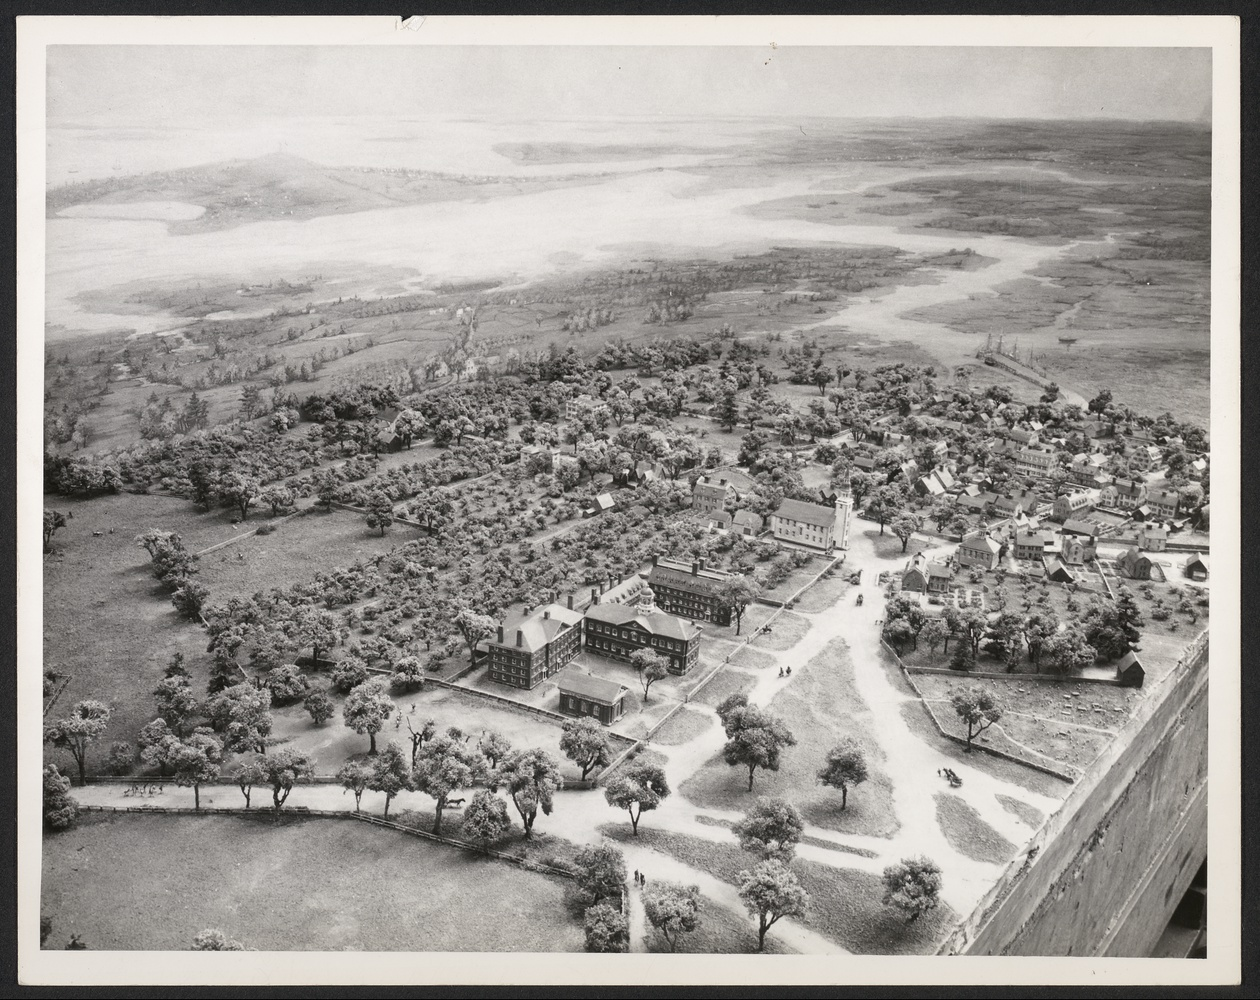 This 1947 photo shows the Pitman diorama of Harvard in 1775 looking down Cambridge Common. The year before campus became quarters for American militiamen amid the Revolution, Harvard Yard had only a dotting of colonial buildings.